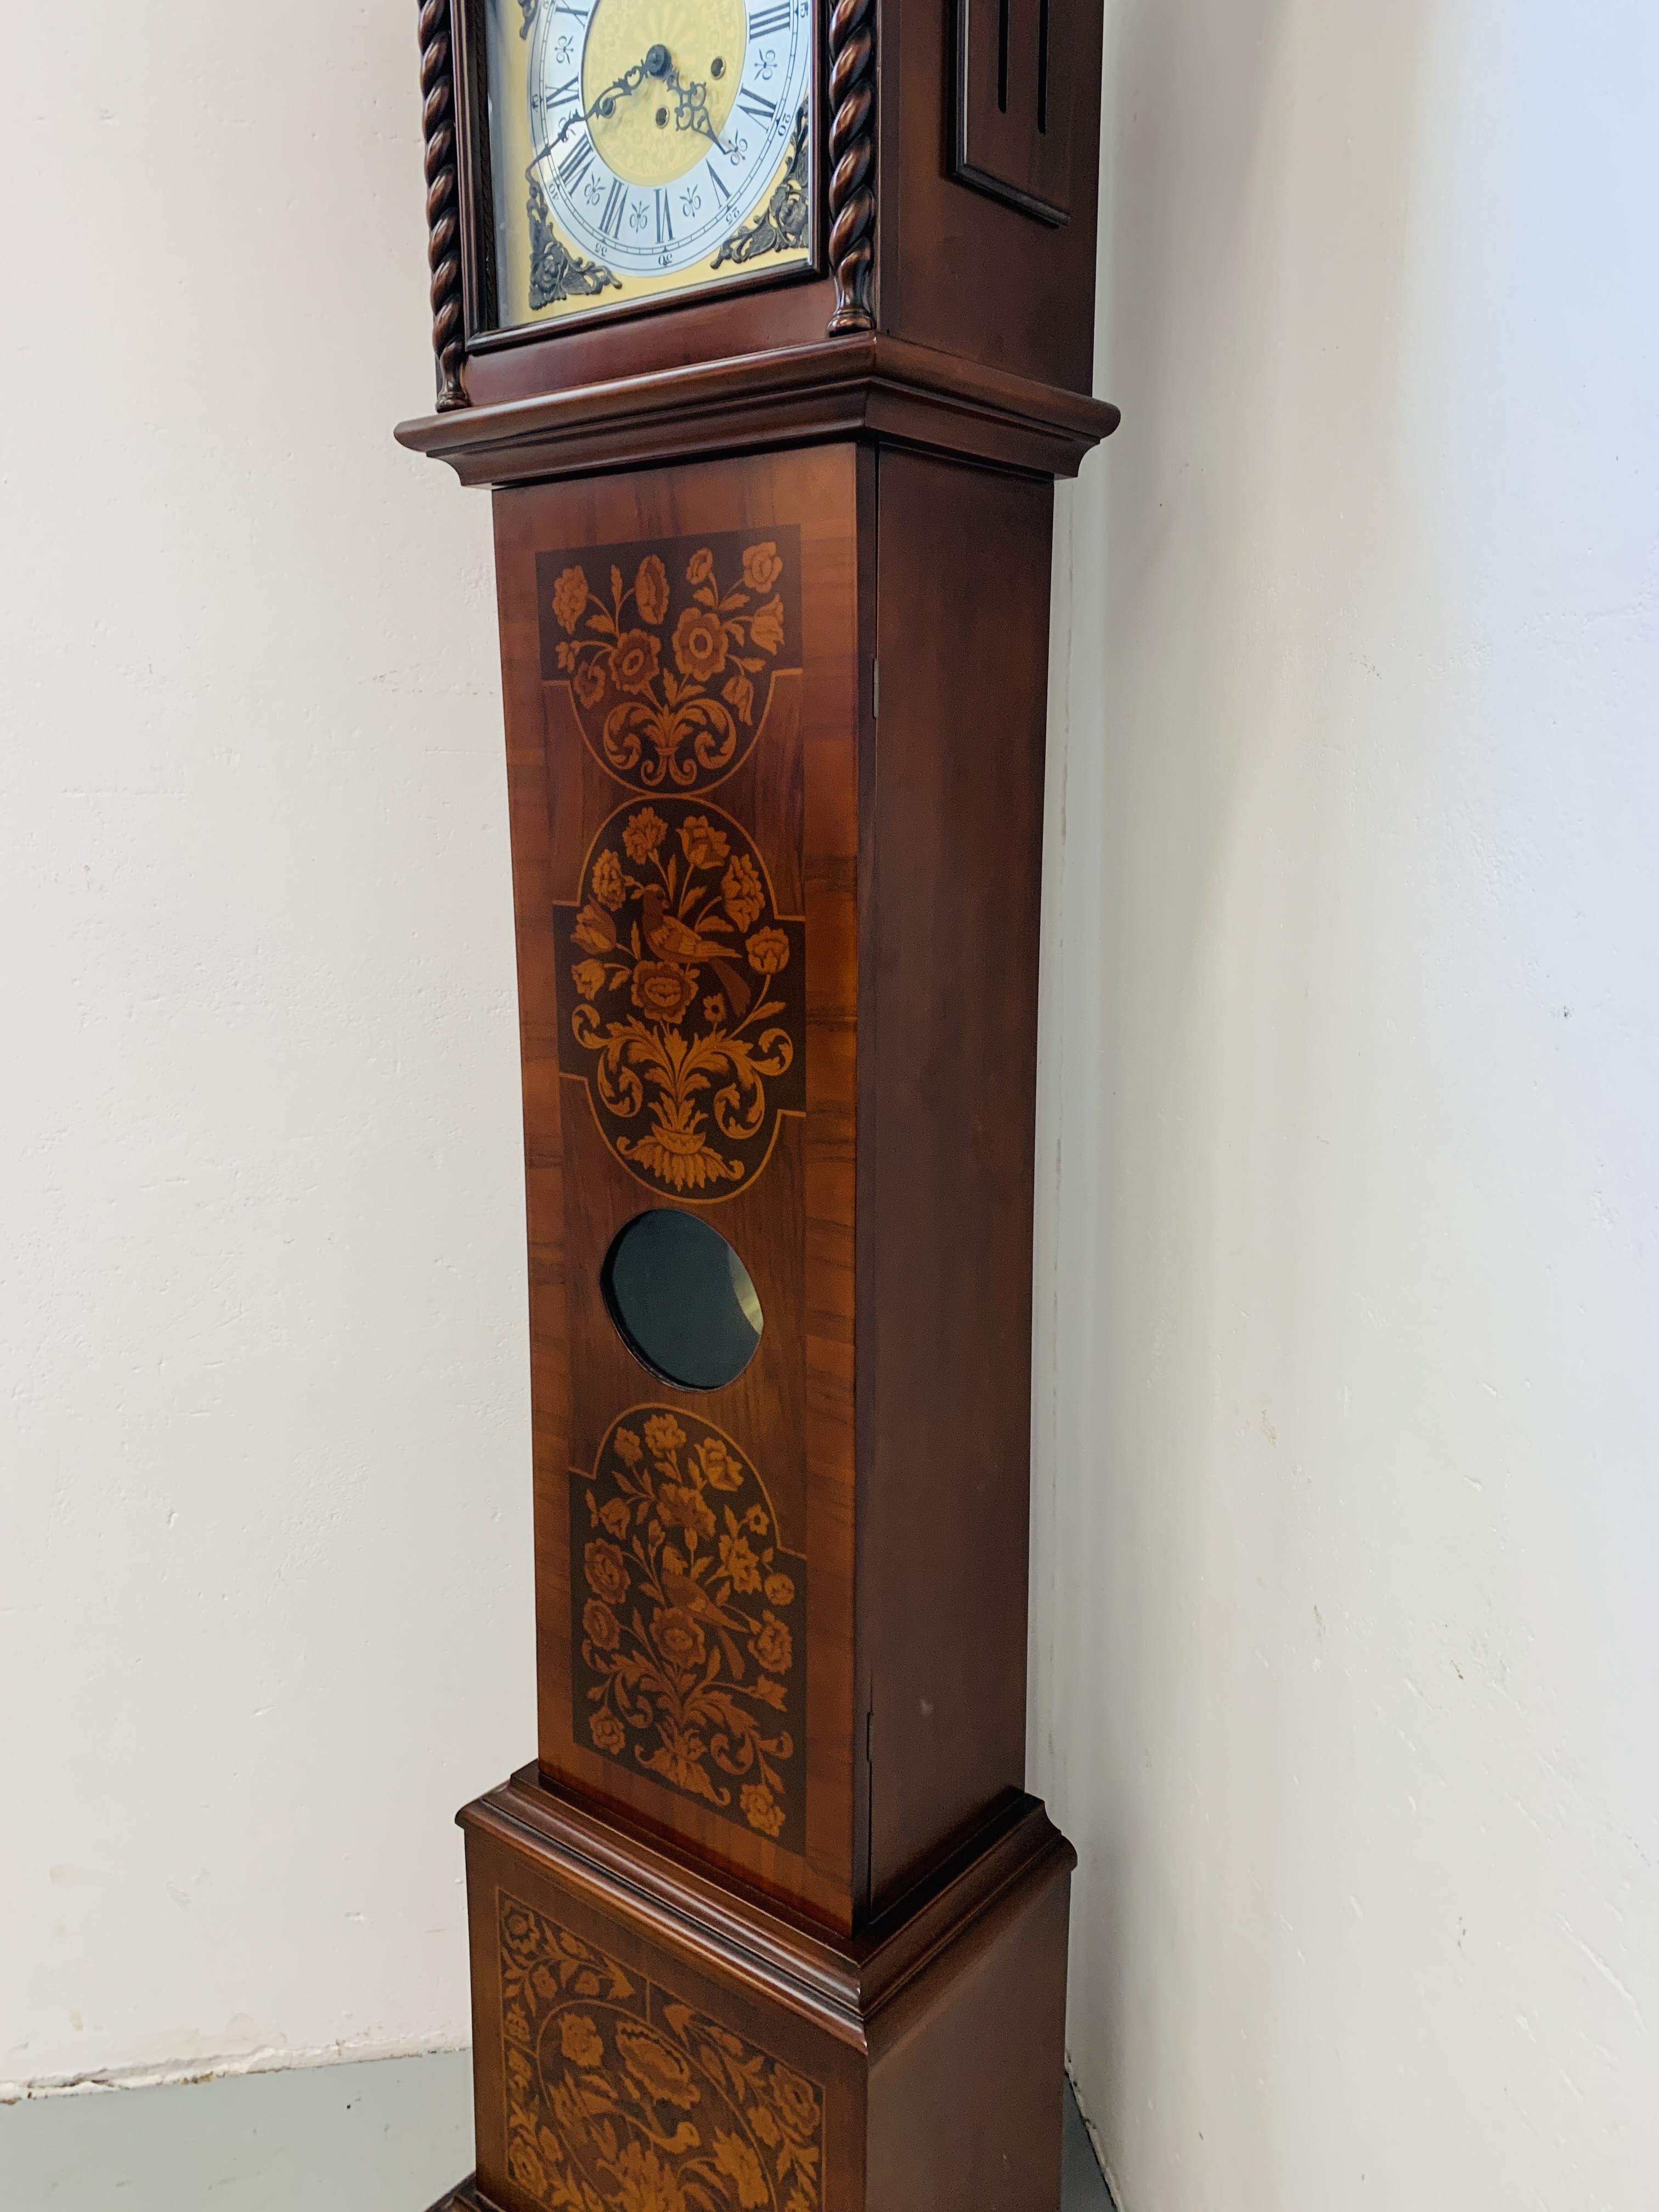 A GOOD QUALITY REPRODUCTION LONG CASE CLOCK - WESTMINSTER CHIME - SOLD AS SEEN - Image 9 of 19